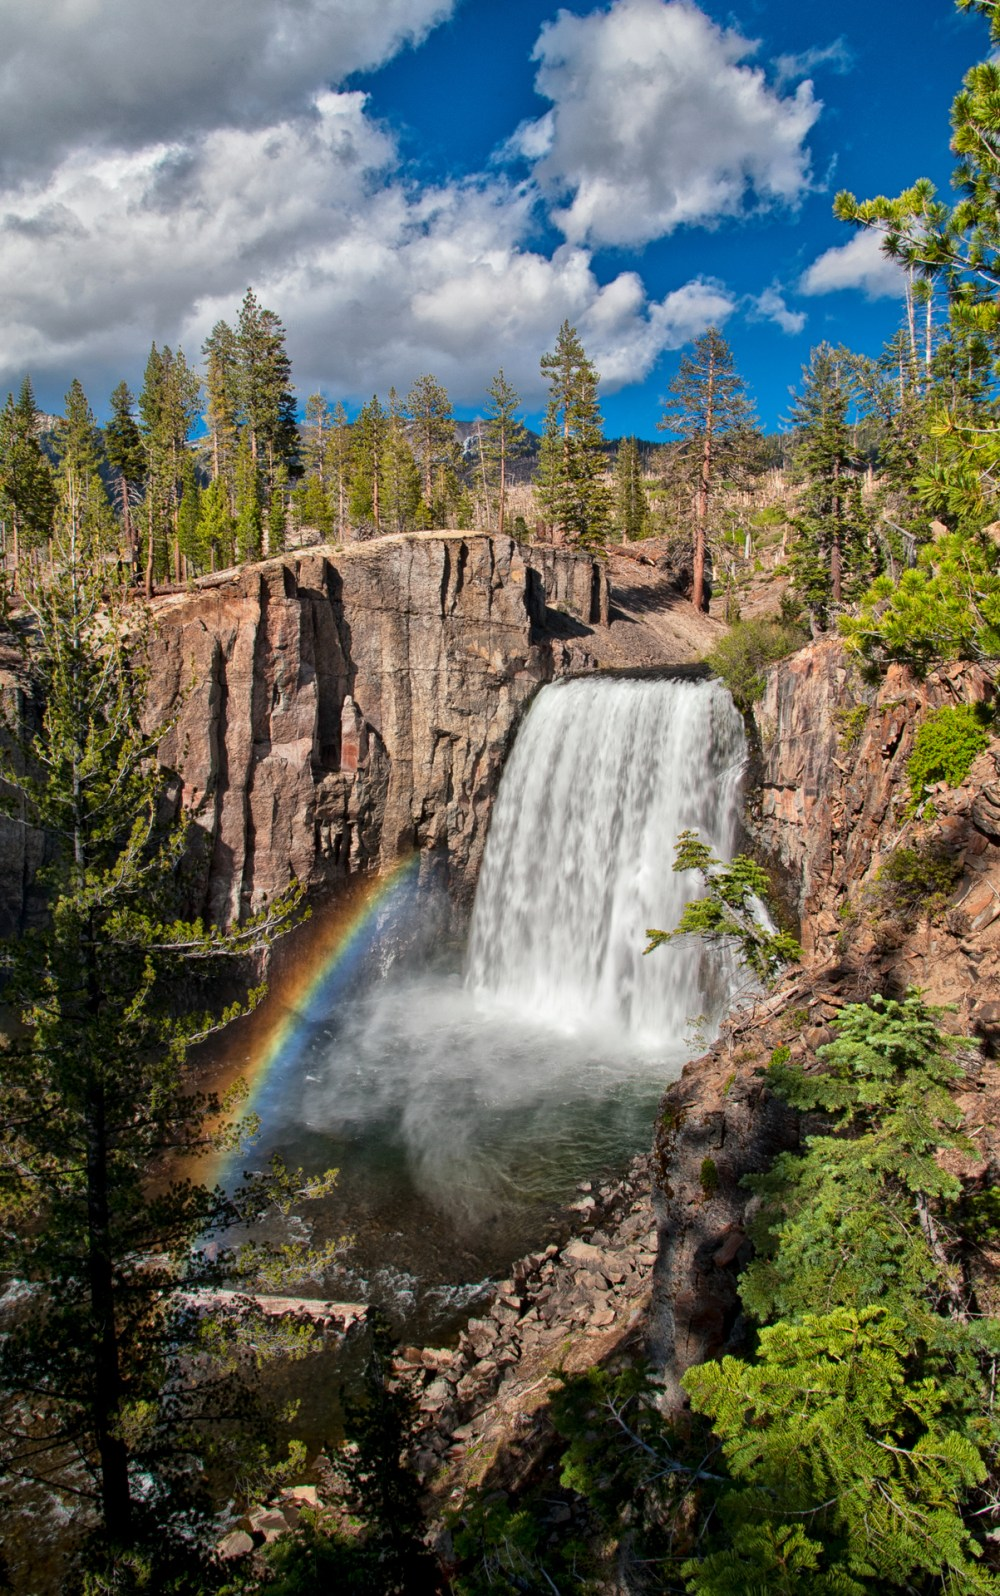 Here's a great pic of a rainbow at the end of Devils Postpile National Monument's iconic Rainbow Falls. Plunging 101-feet down to the turbulent water below, the falls are aptly named for the many rainbows that appear in its mist throughout sunny summer days.  Photo by Cat Connor. Posted on Tumblr by the US Department of the Interior, 3/17/15.